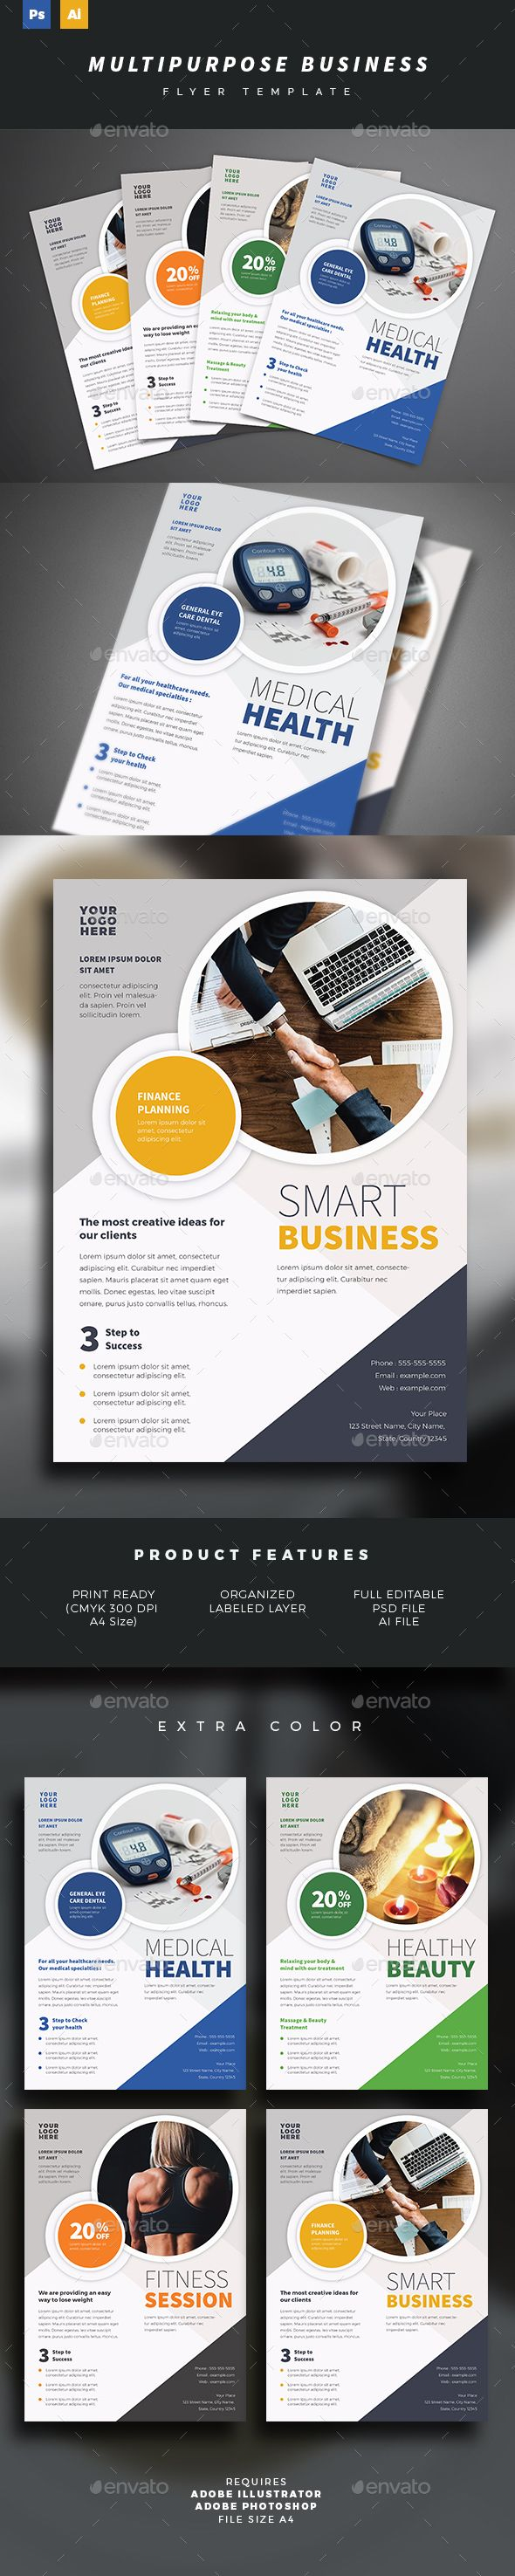 927 best Flyers images on Pinterest | Brochures, Business flyers and ...